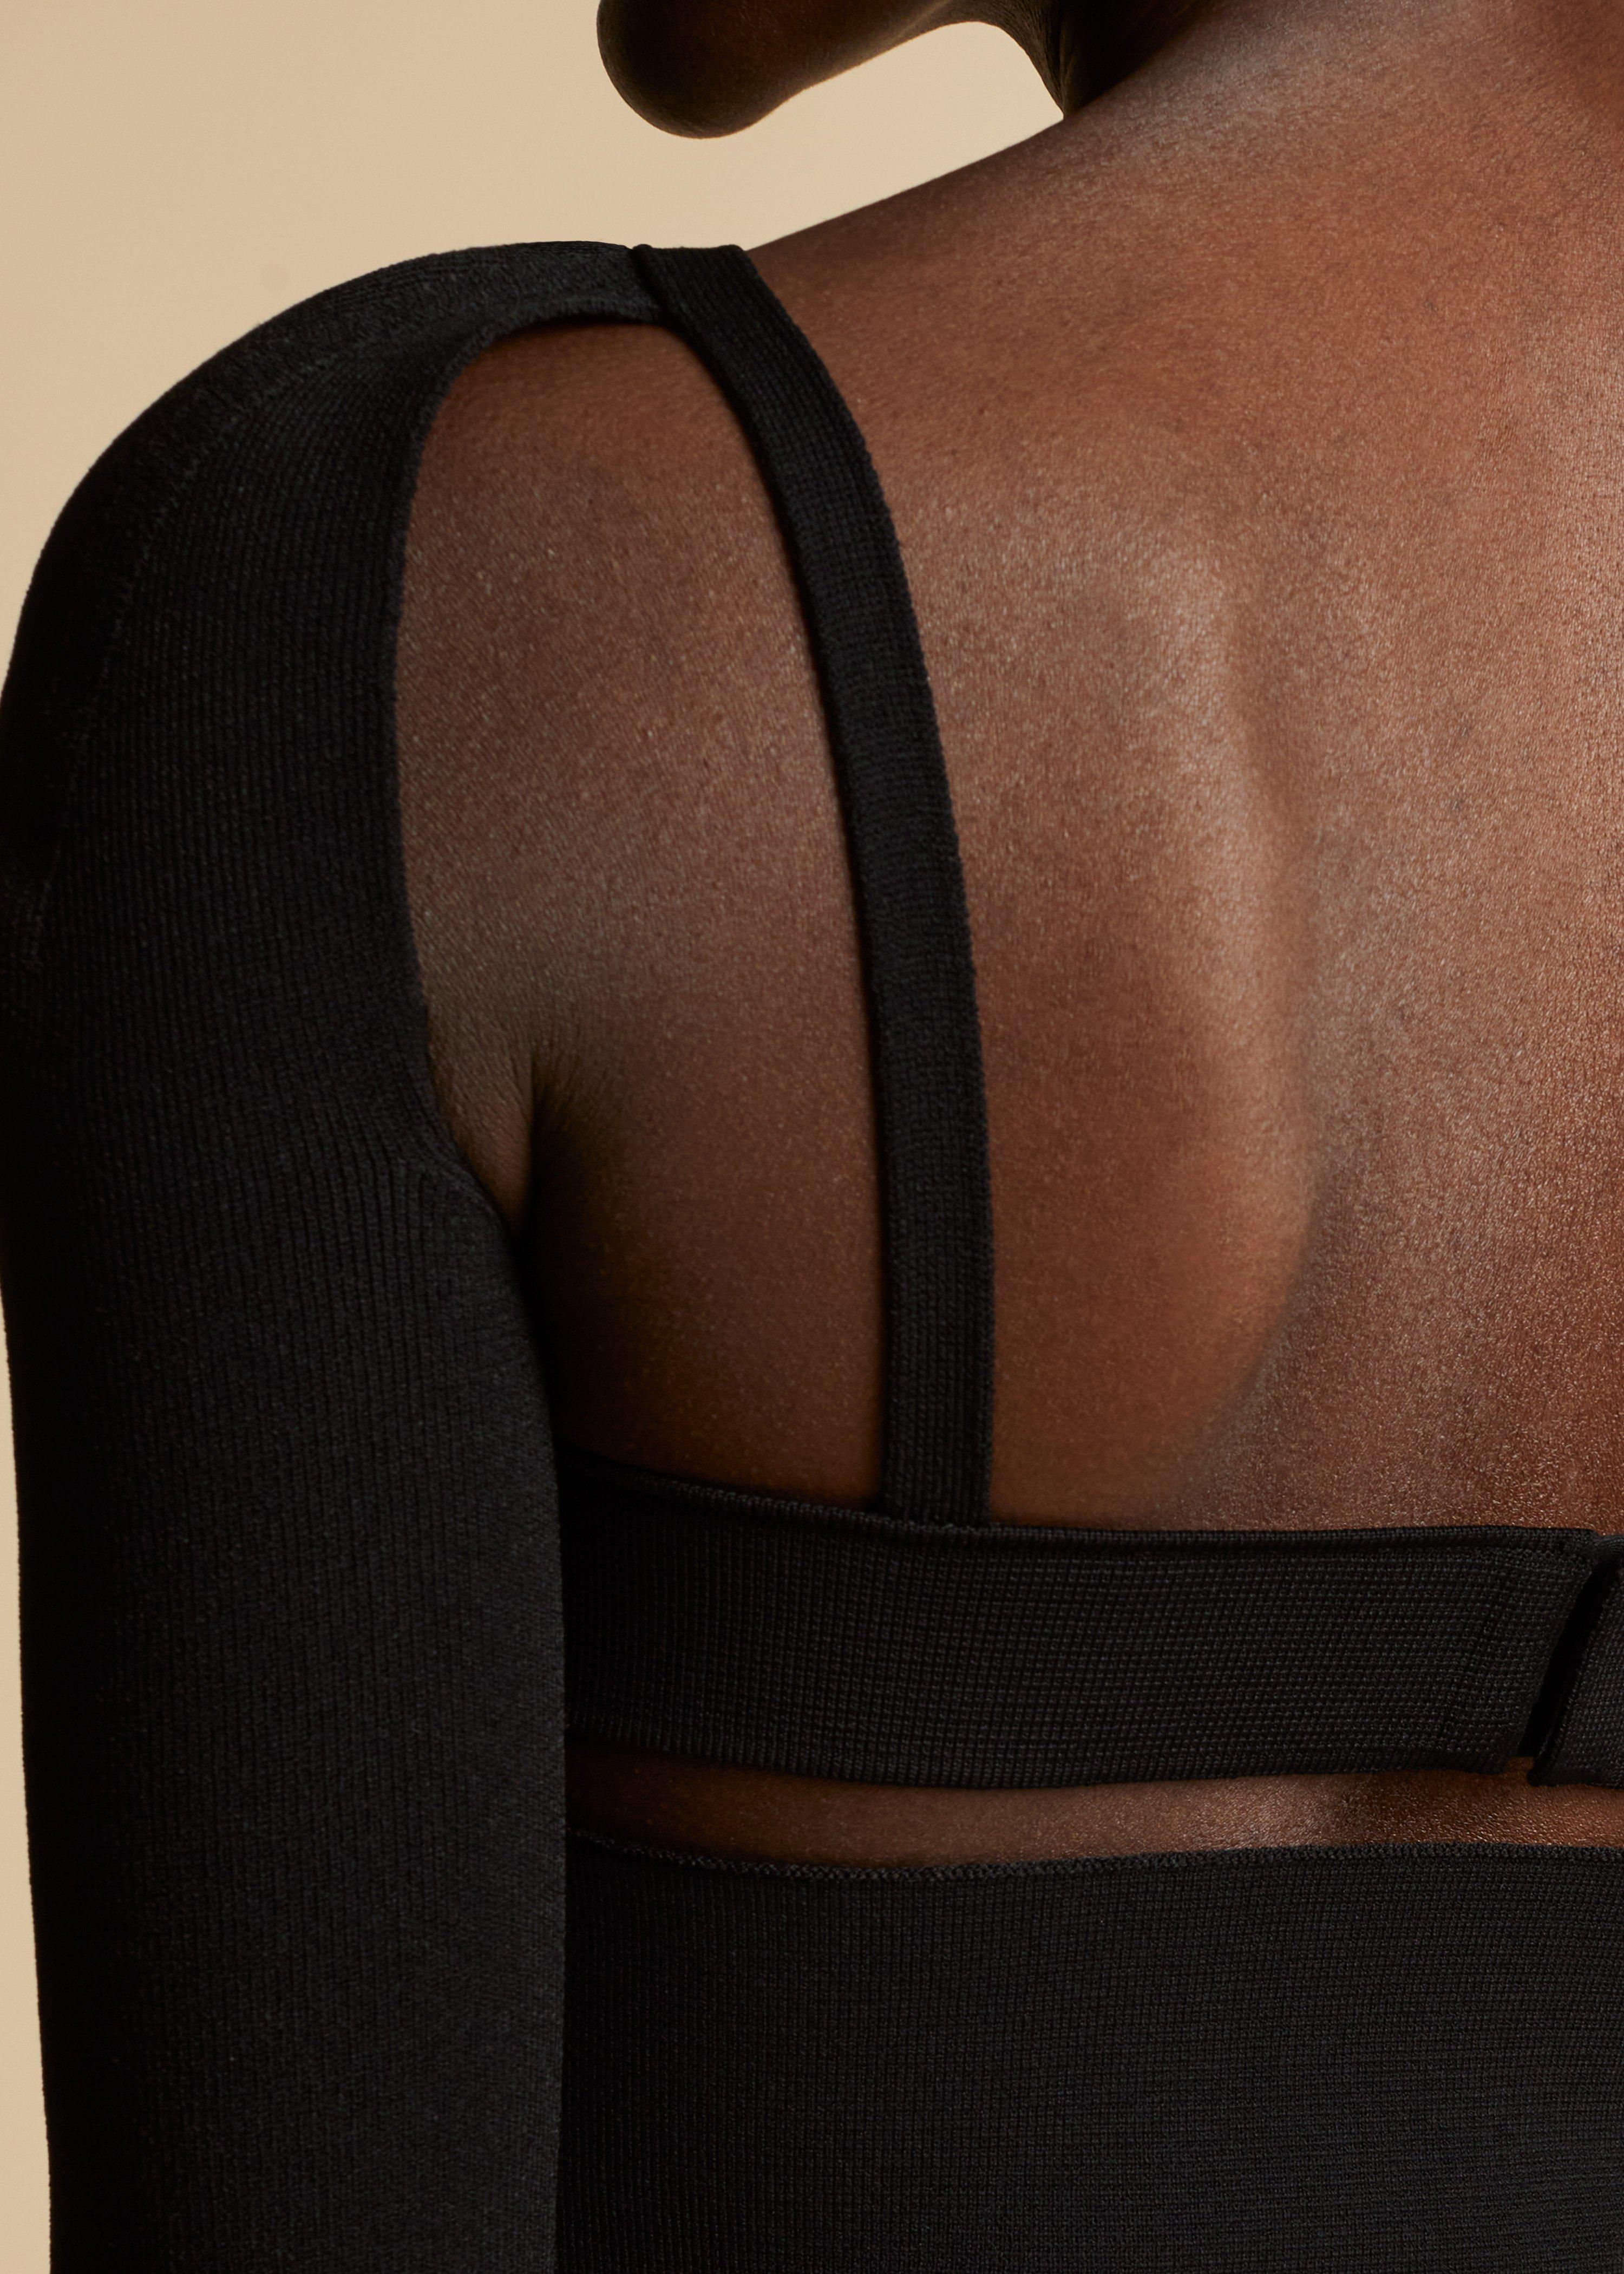 The Roza Top in Black 3